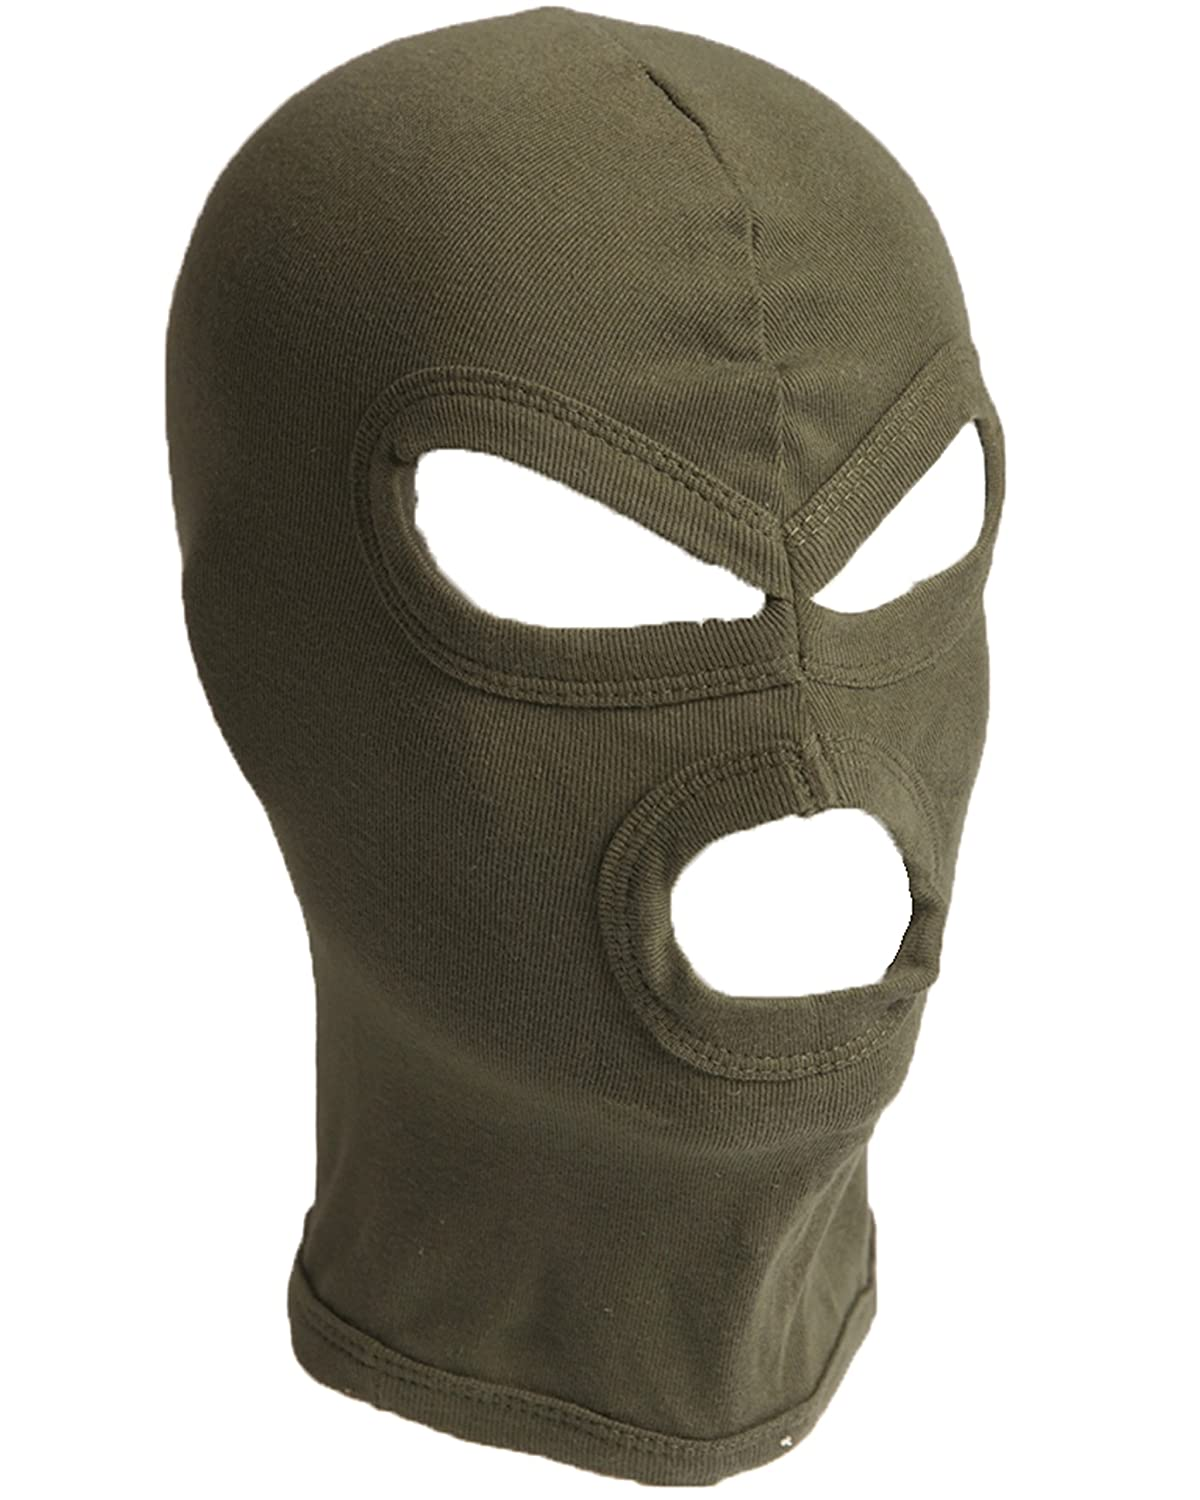 Deluxe 100% Cotton Short 3 Hole Under Helmet Balaclava Head Pice